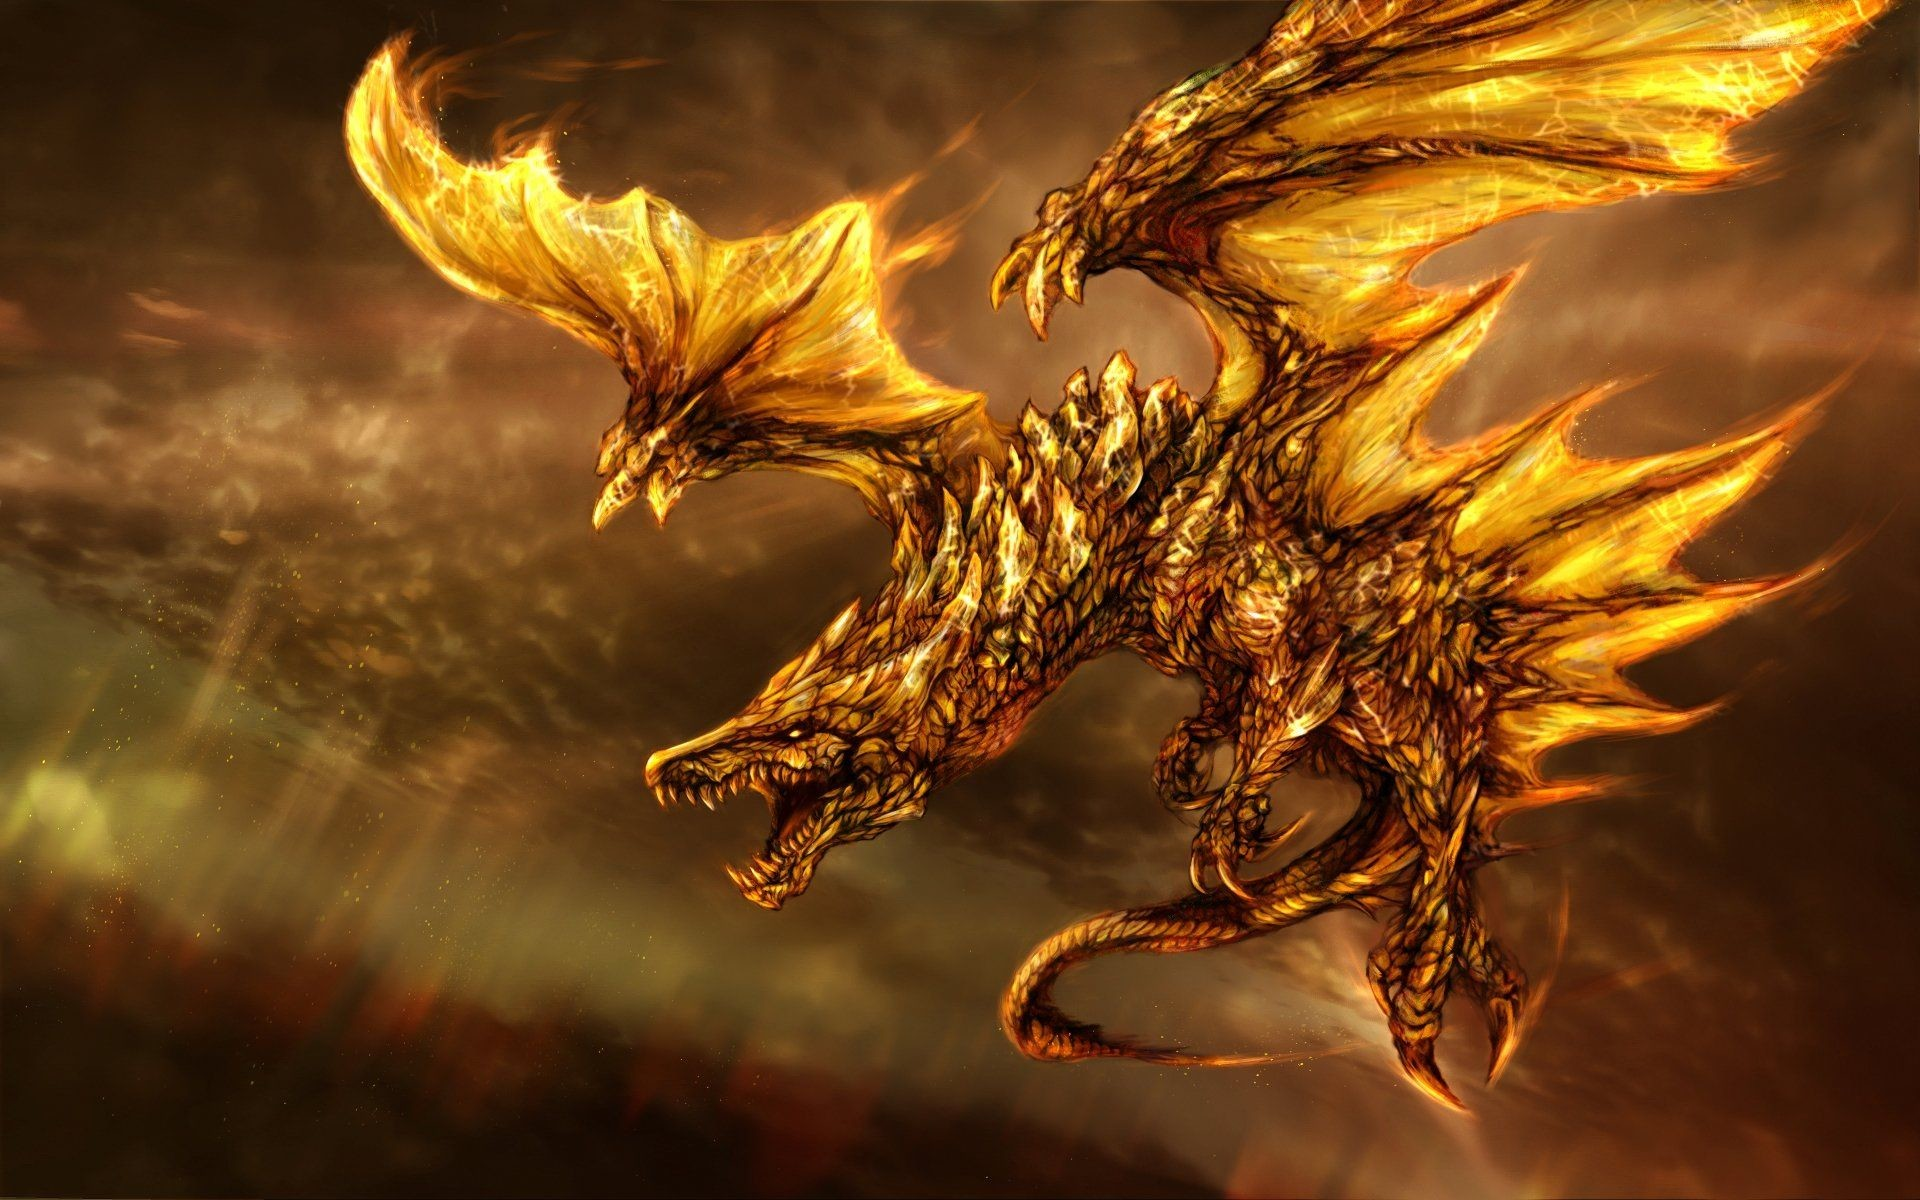 Res: 1920x1200, dragon pictures | Dragon Wallpapers HD Free Download | Wallcapture.com